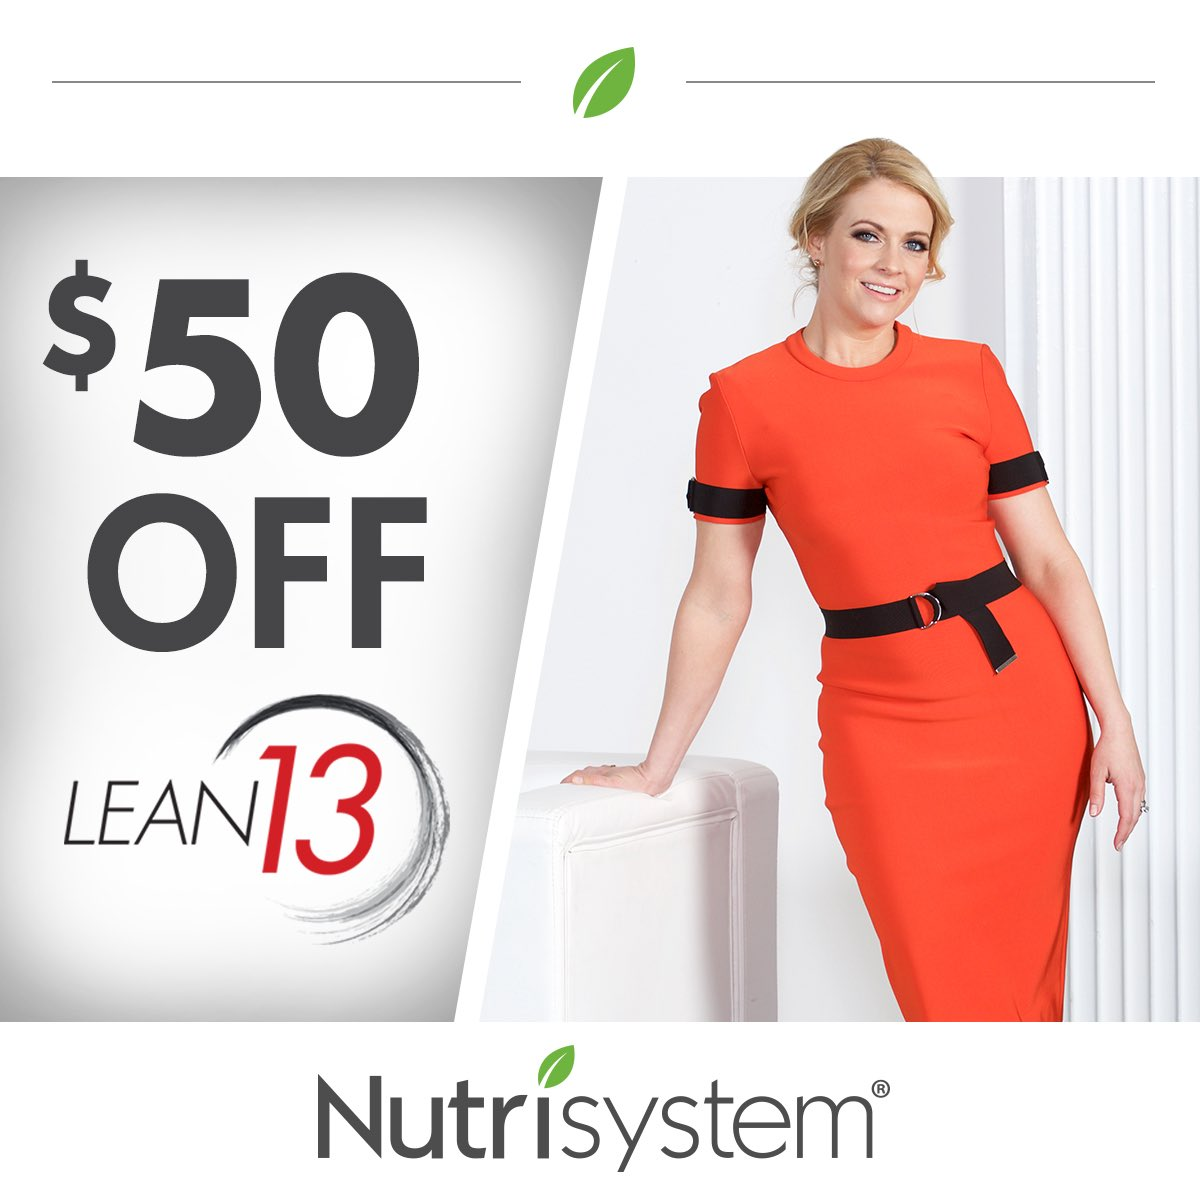 Be your best in 2017 with @Nutrisystem Lean13. From me to you – save $50 plus free shipping! https://t.co/zQtDqaC44m https://t.co/16yMpq6nDV